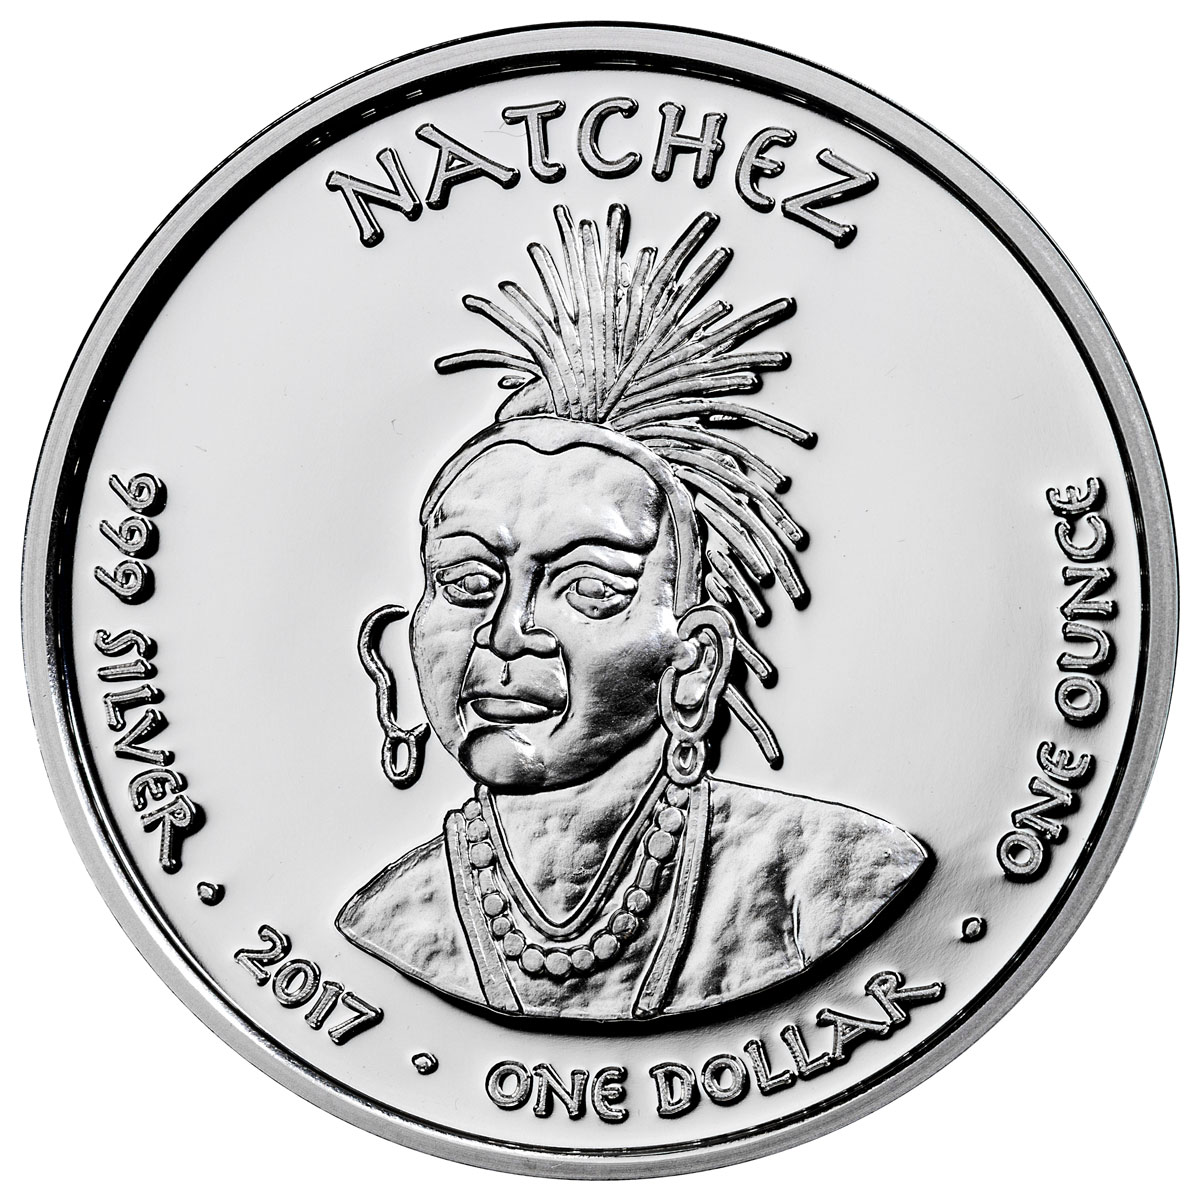 2017 Native American Silver Dollar - Louisiana Natchez - Black Bear 1 oz Silver Proof Coin GEM Proof Original Mint Capsule